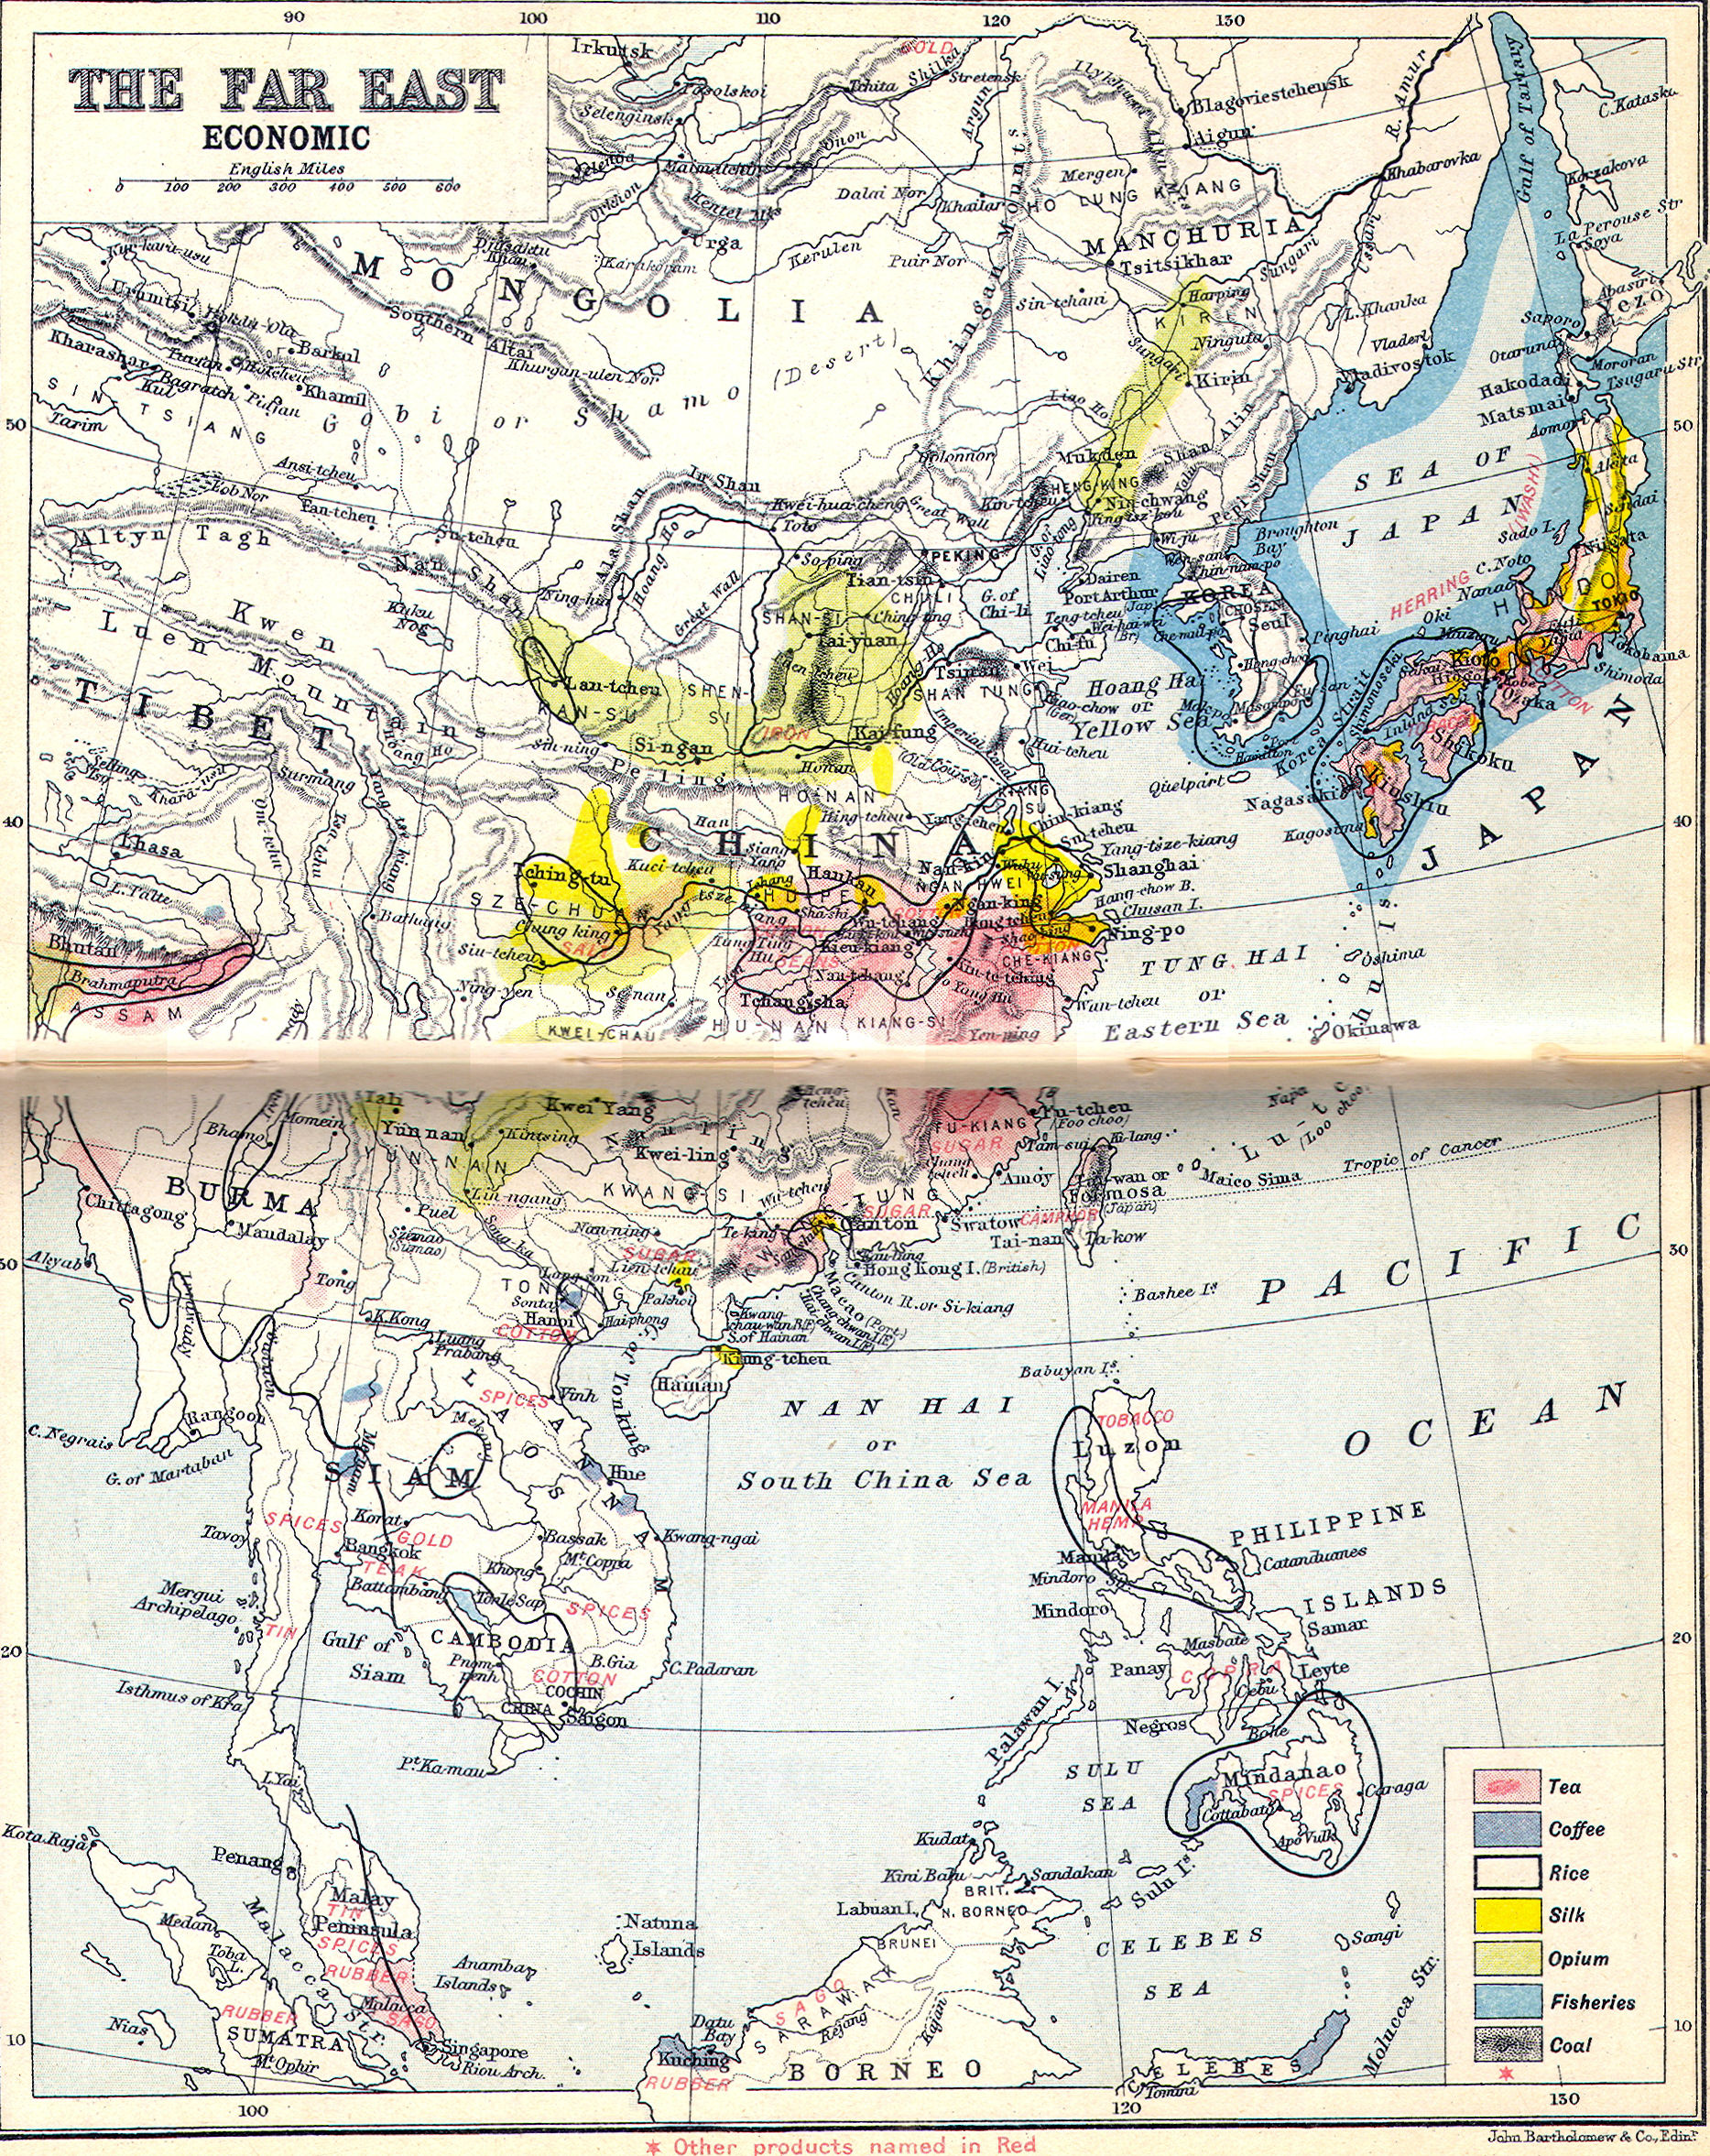 http://www.heritage-history.com/maps/lhasia/asia073.jpg